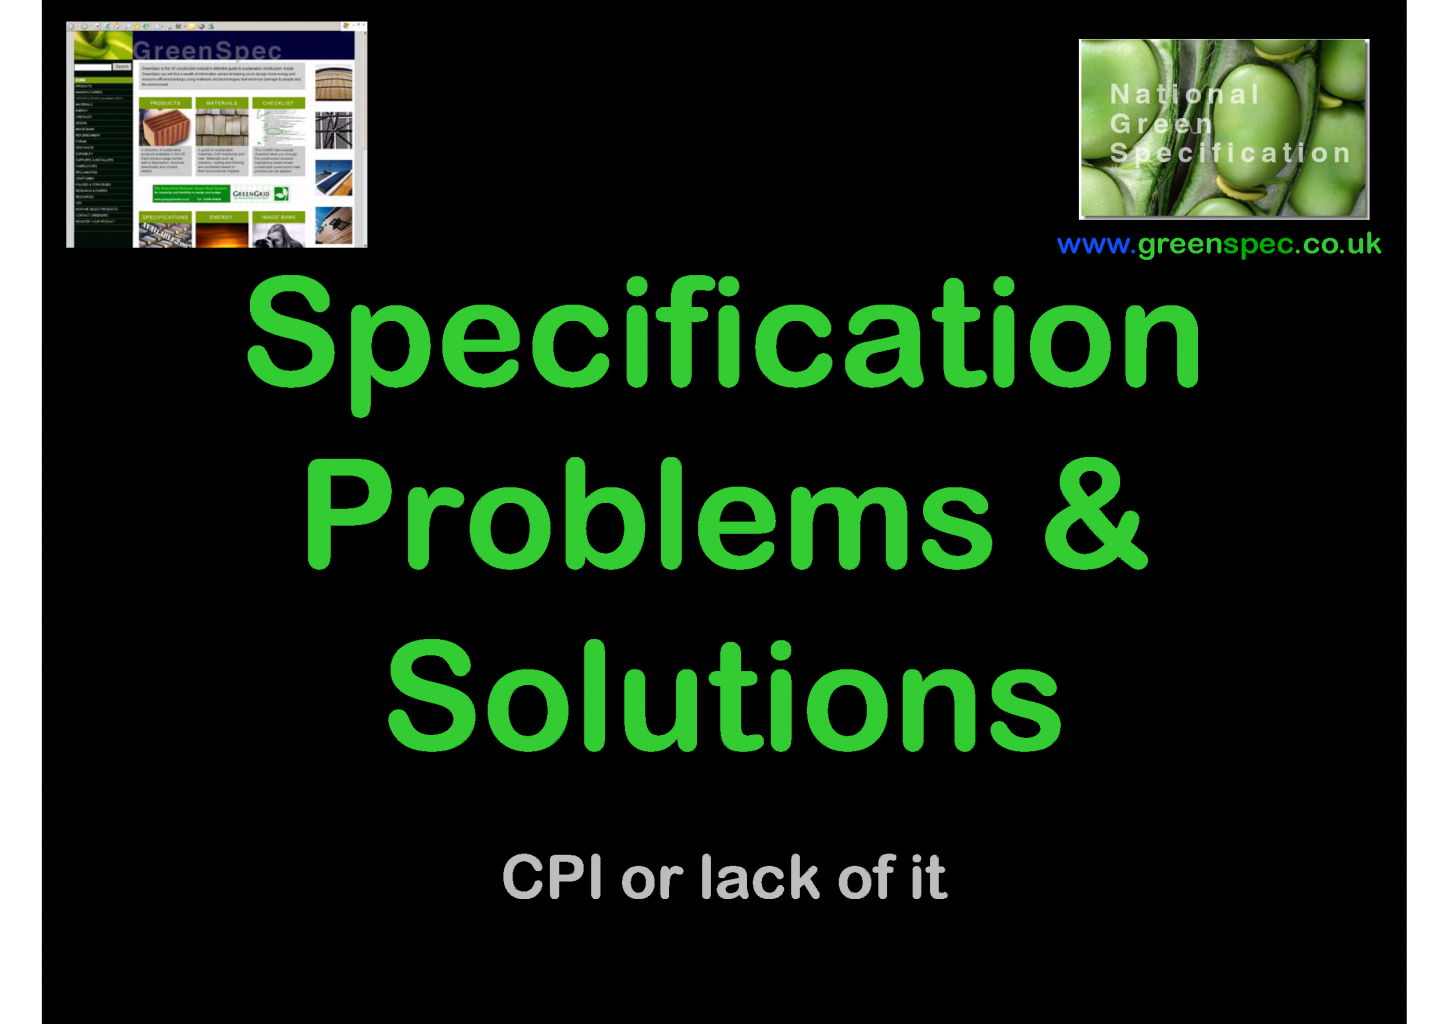 SpecificationProblems+Solutions_Page_1